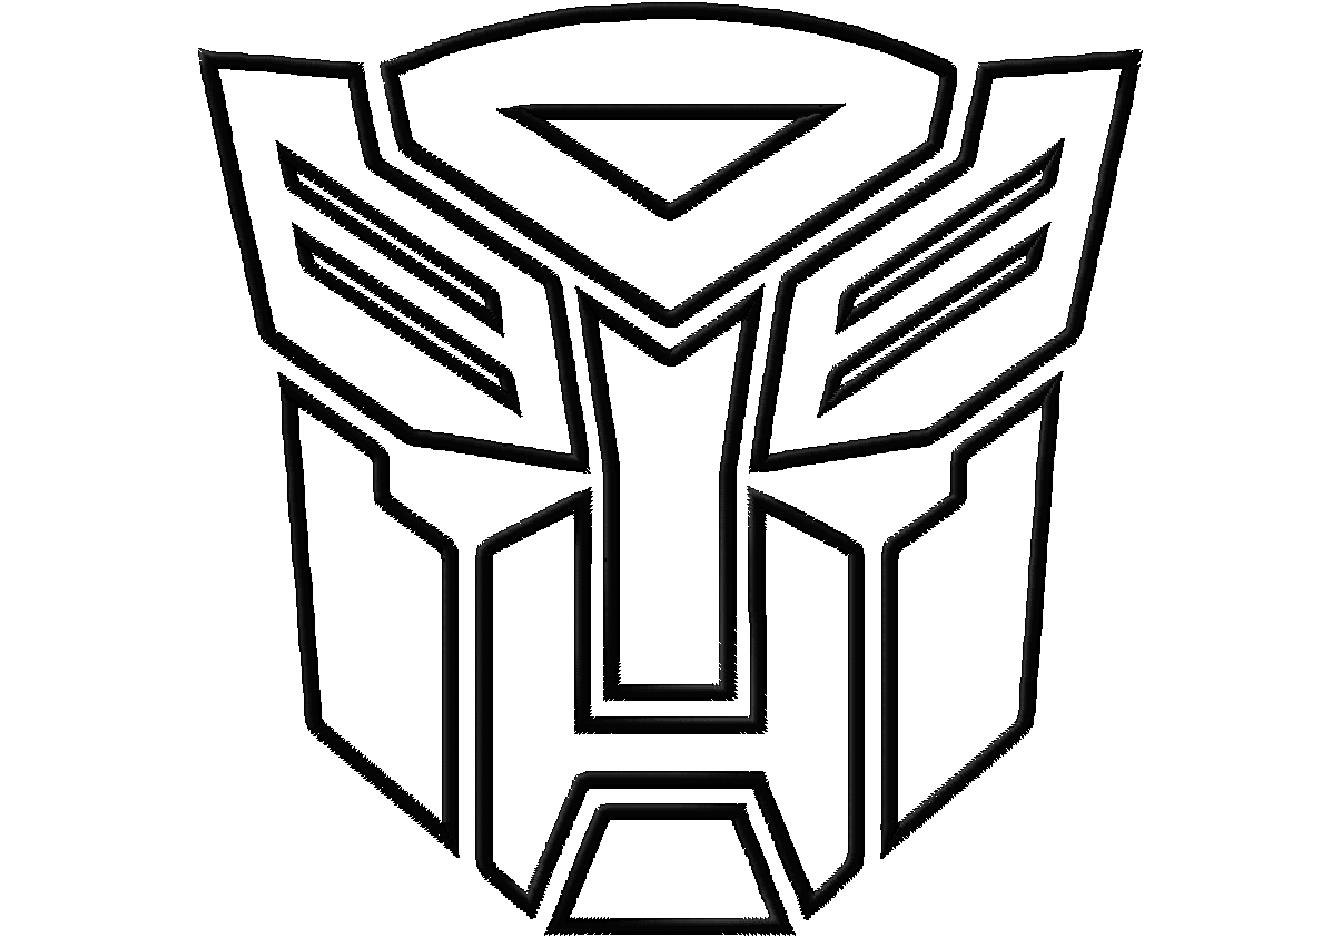 Transformers Live Action Movie Autobots Symbol